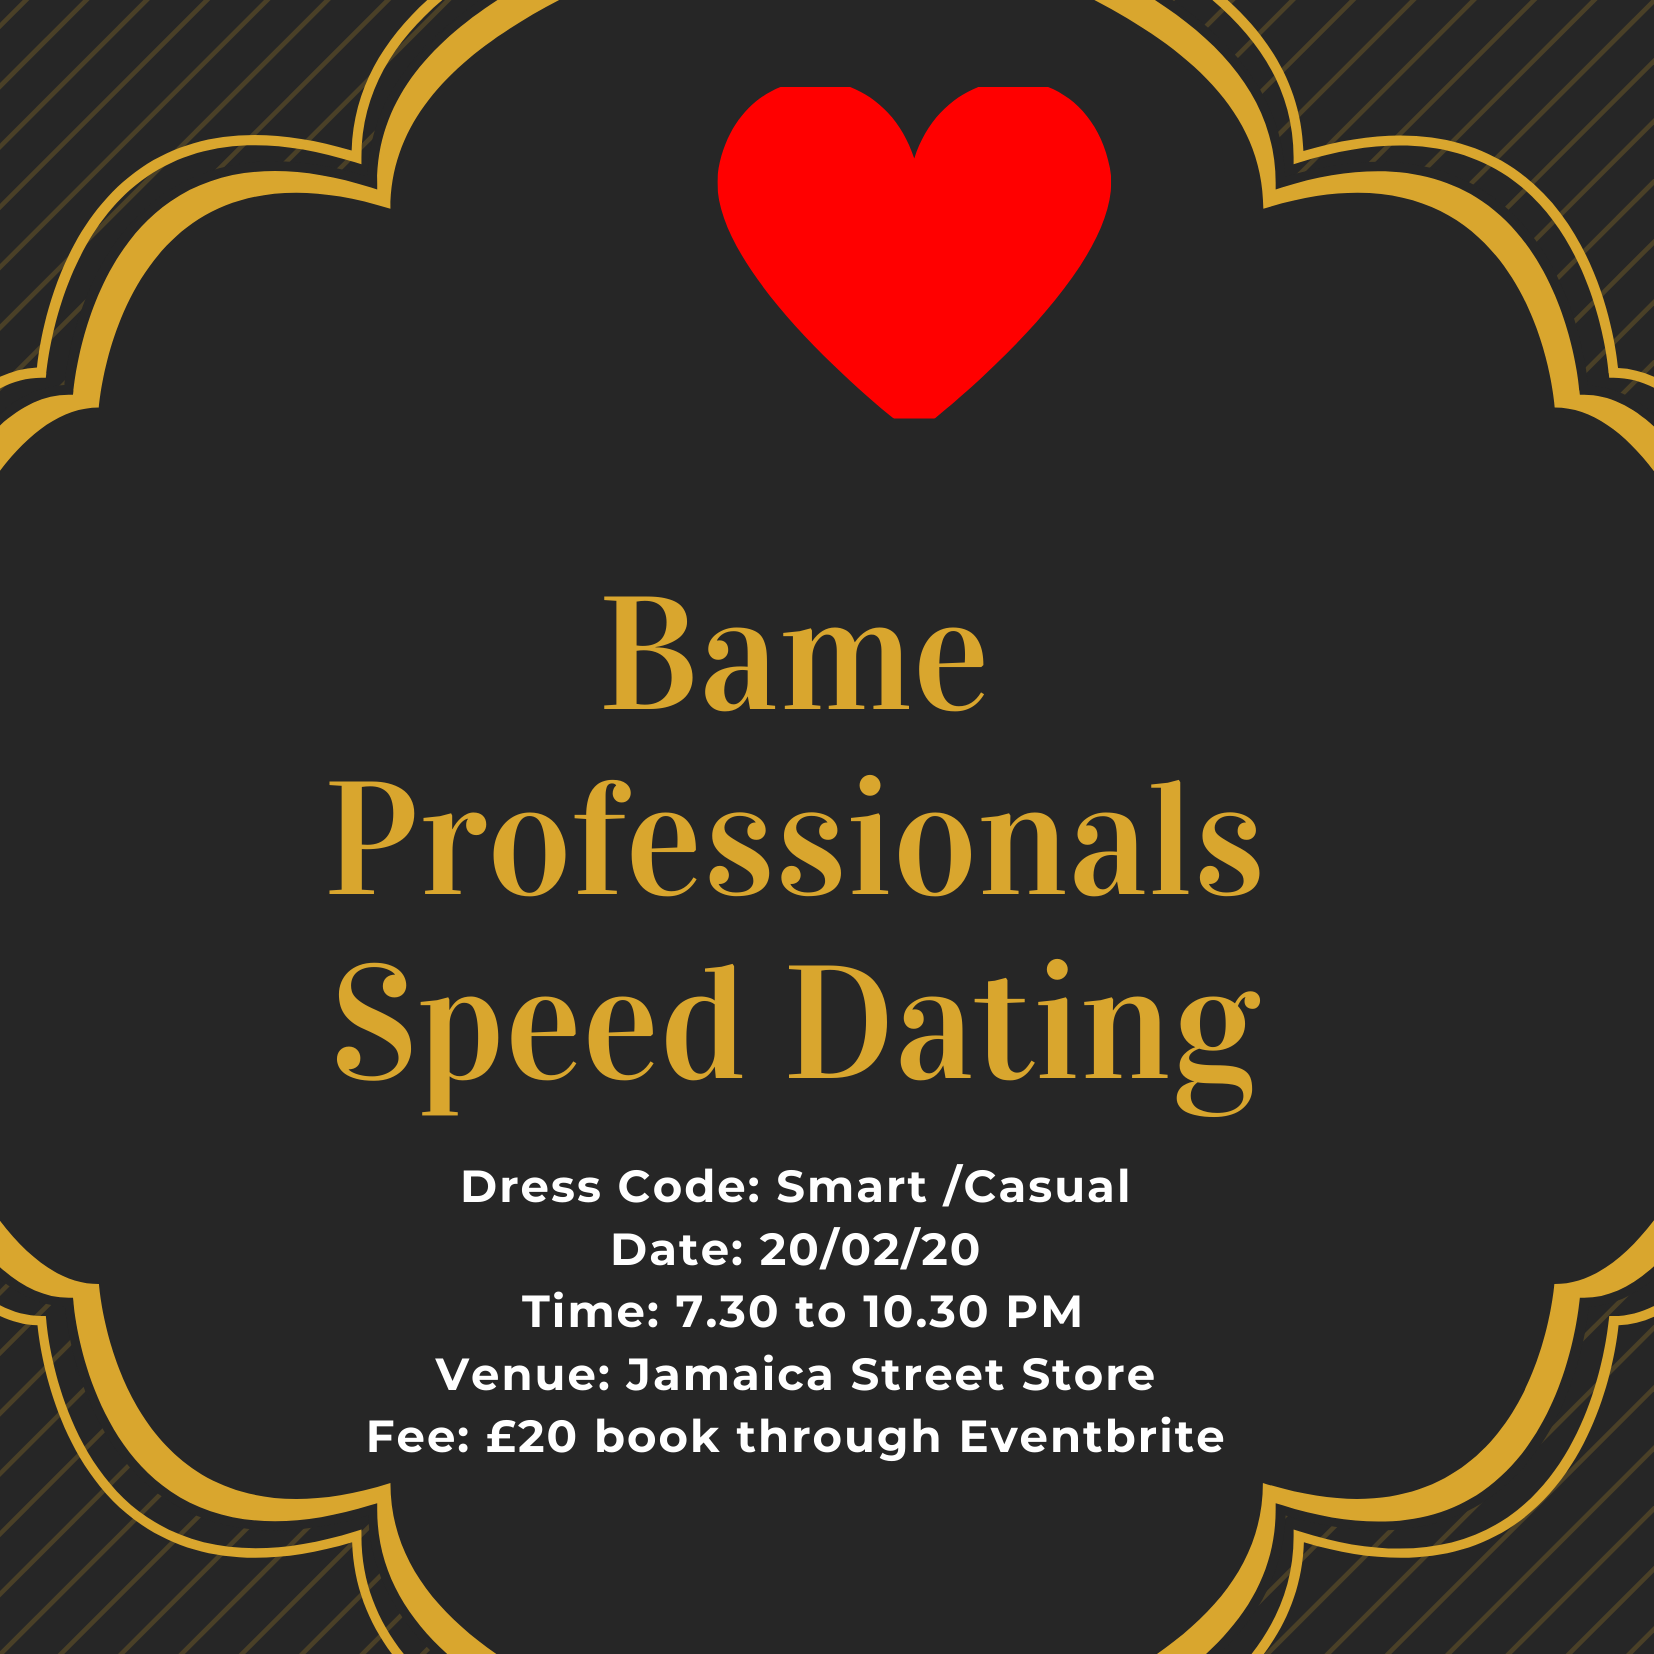 Bame Professionals Speed Dating